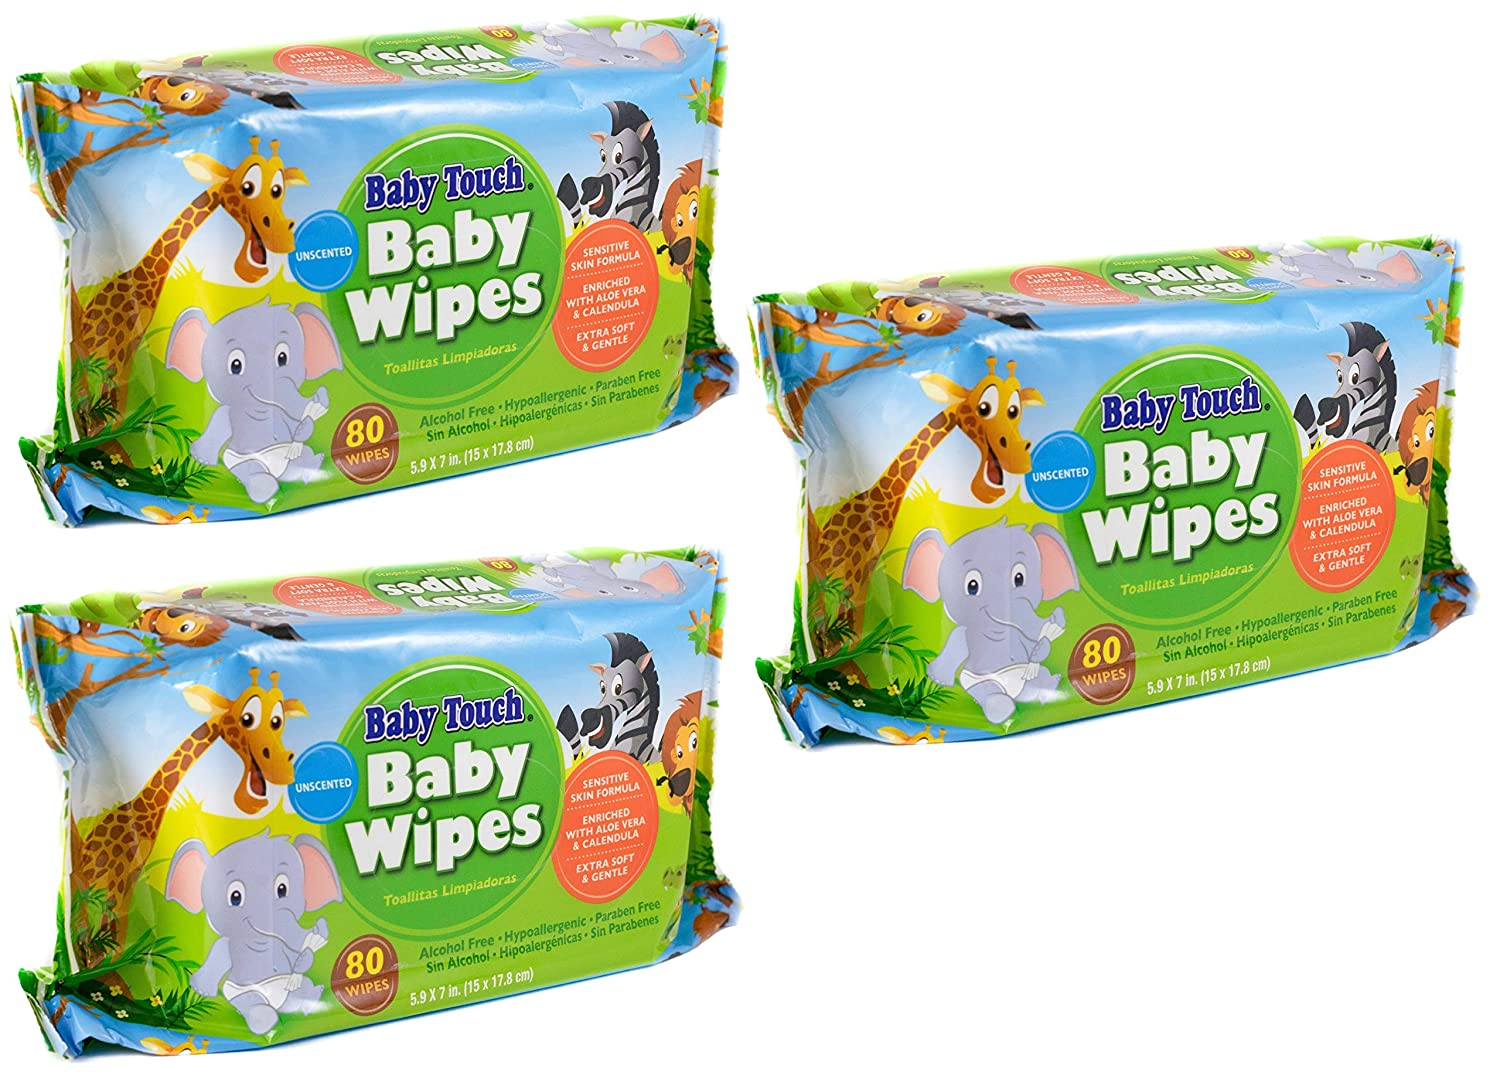 Amazon.com : Baby Touch Wipes. 240 Unscented Baby Wipes. Cleansing Water Wipes for Sensitive Skin. Disposable Moist Wipes for Cleaning, Refreshing.